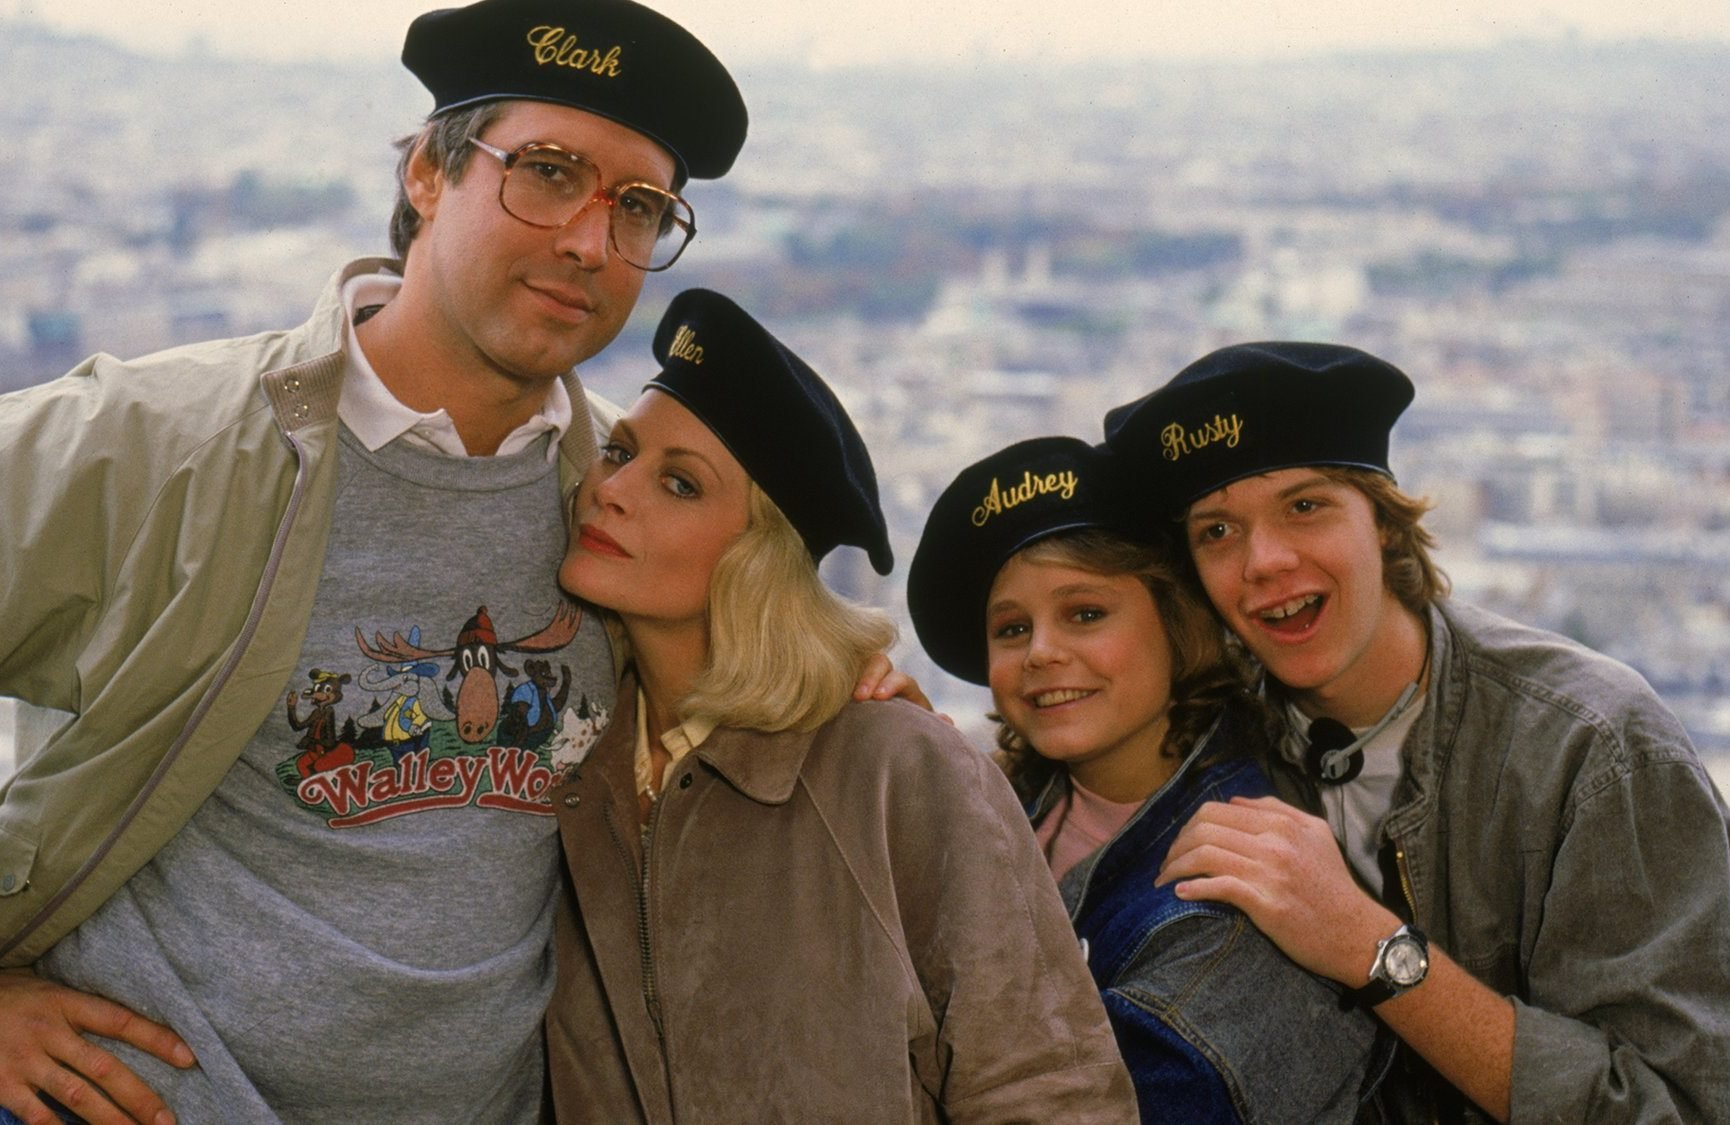 european vacation pic e1629285923612 10 Globetrotting Facts About National Lampoon's European Vacation